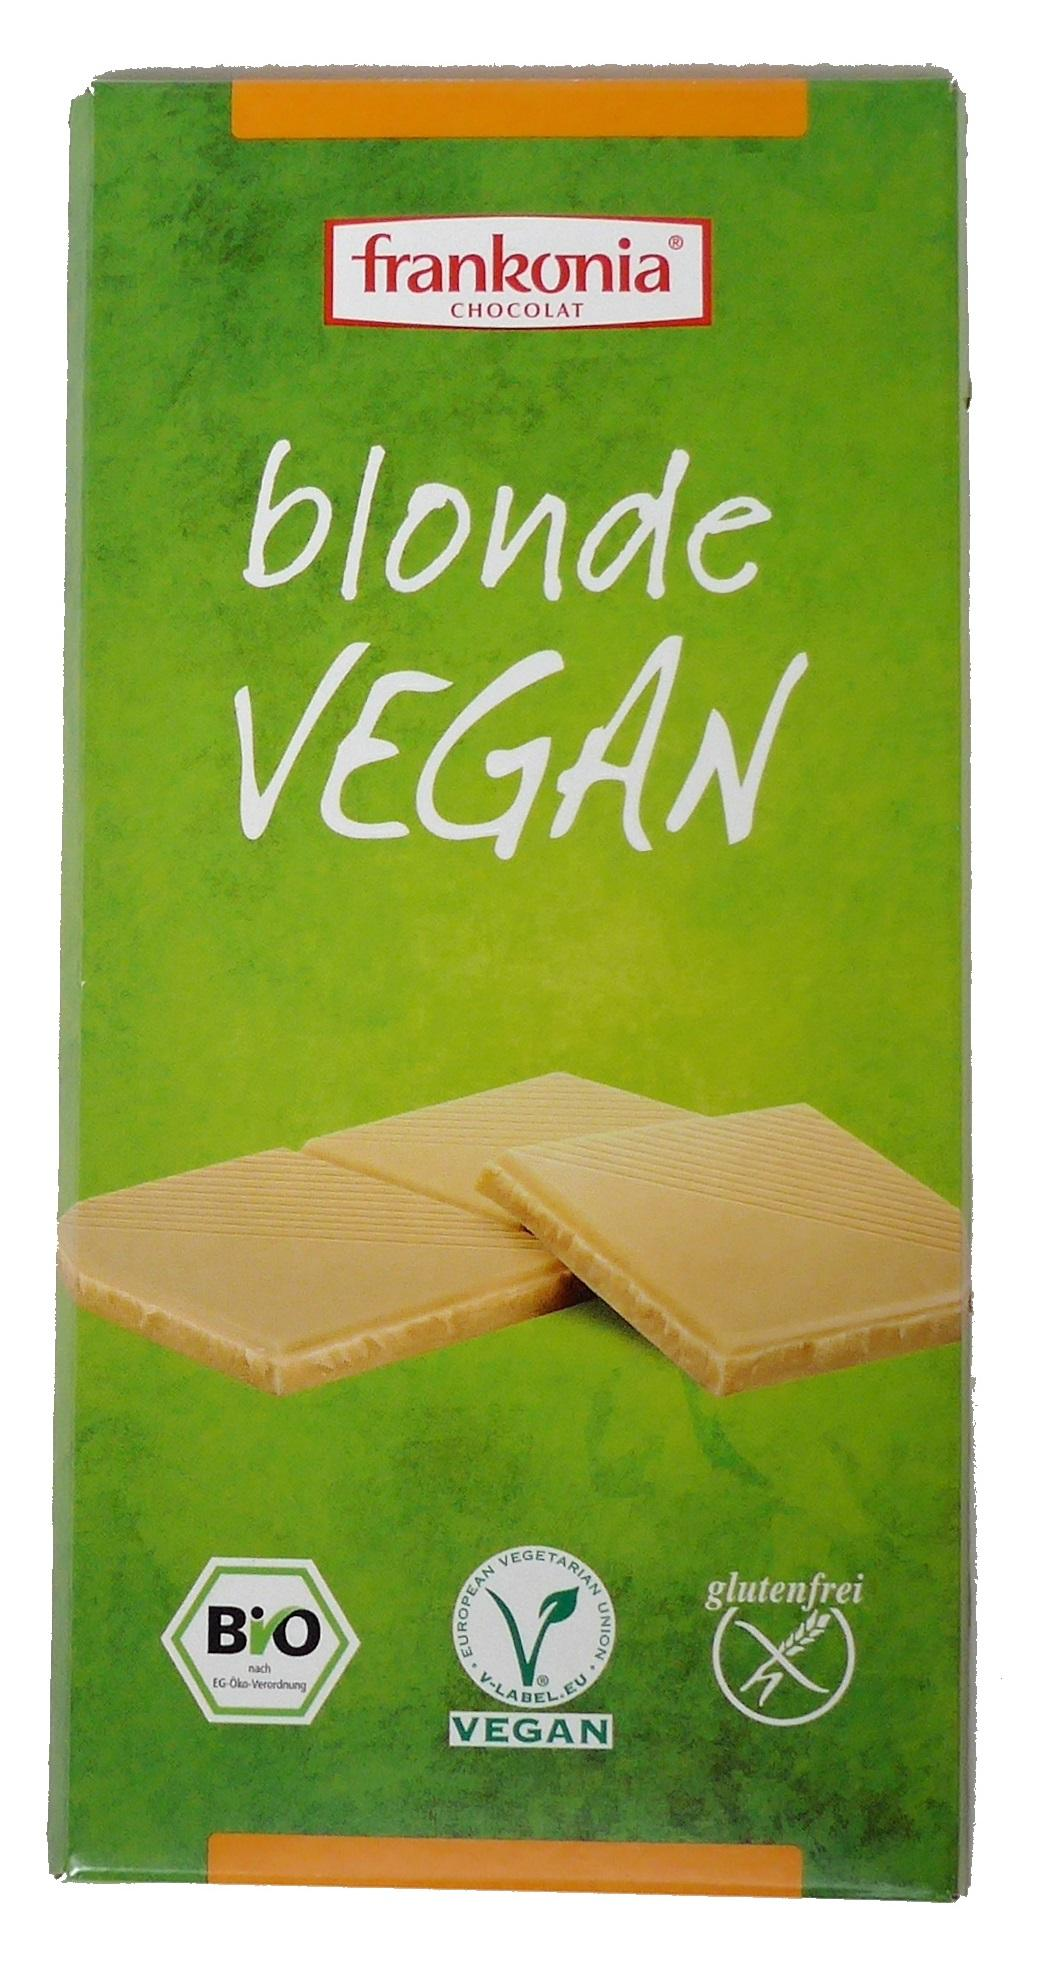 blonde_vegan Blonde Vegan 100g